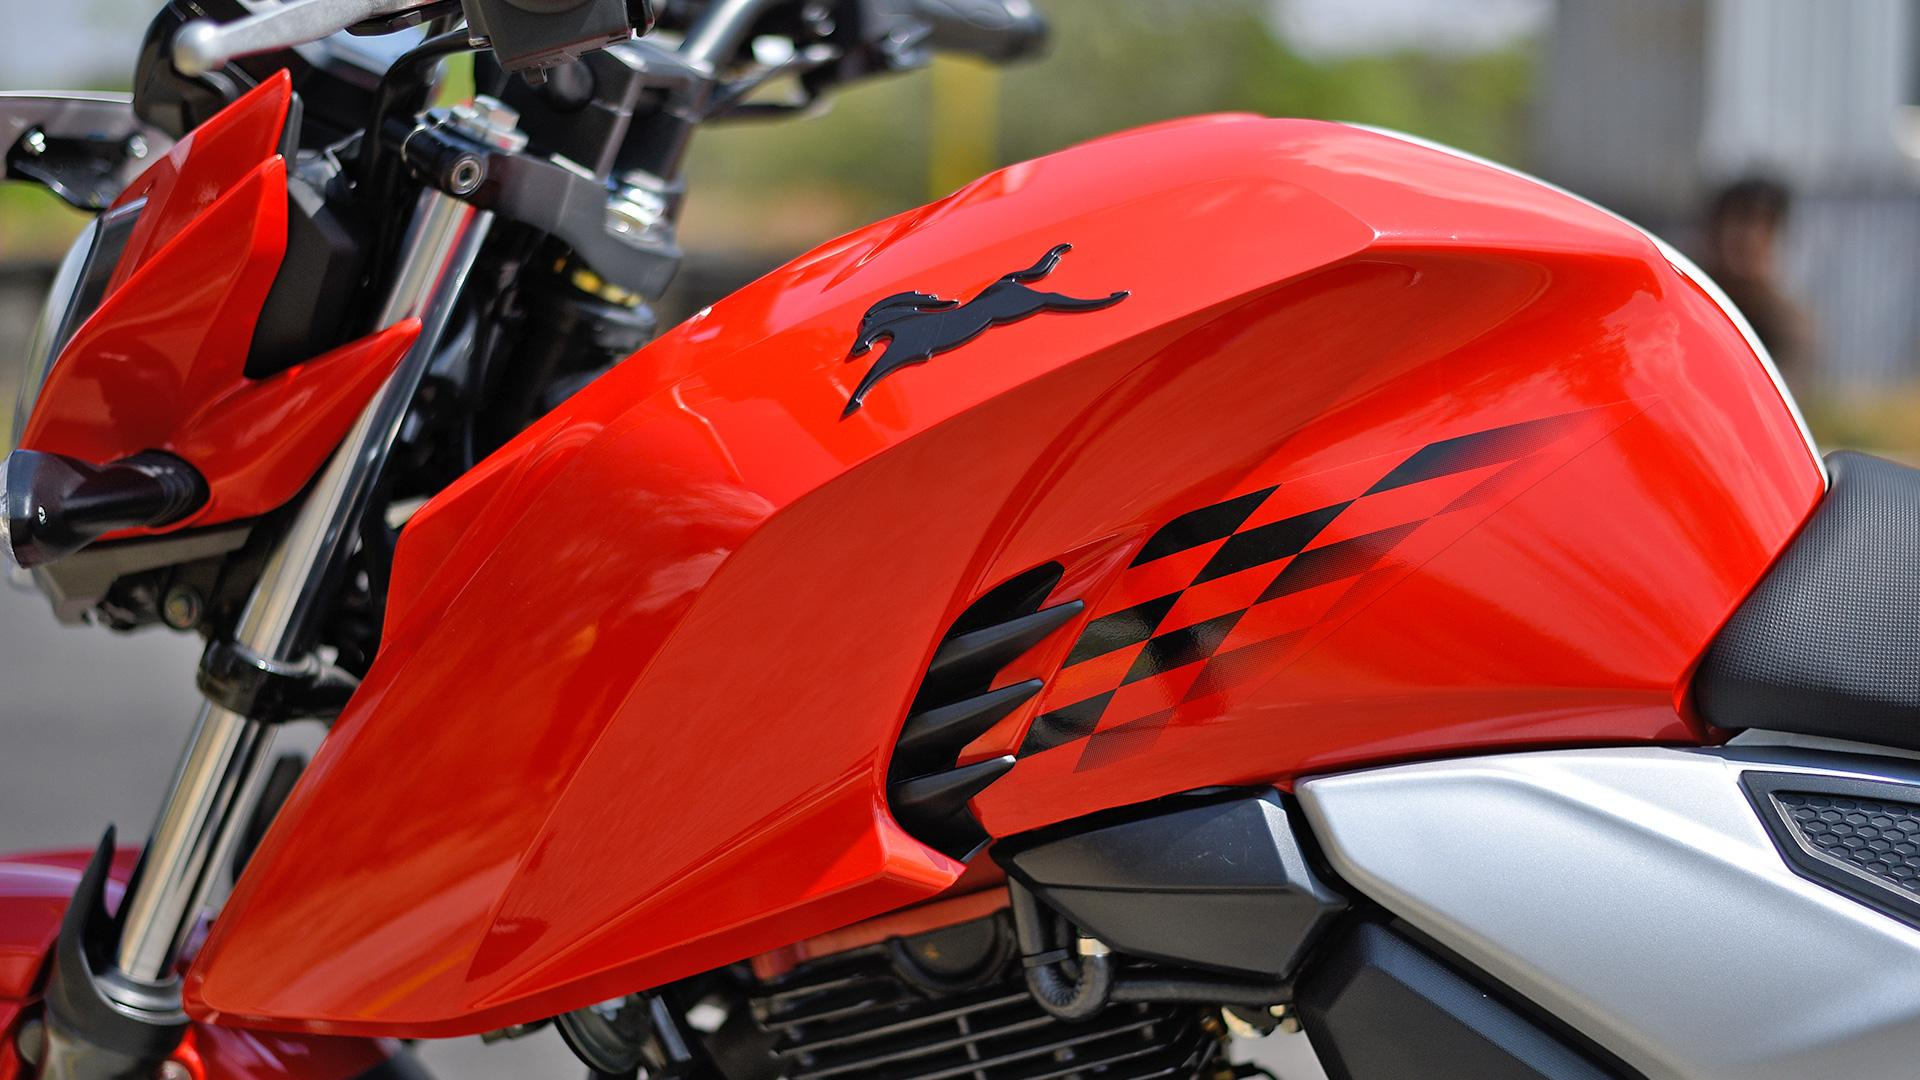 Apache rtr 160 4v wallpapers download